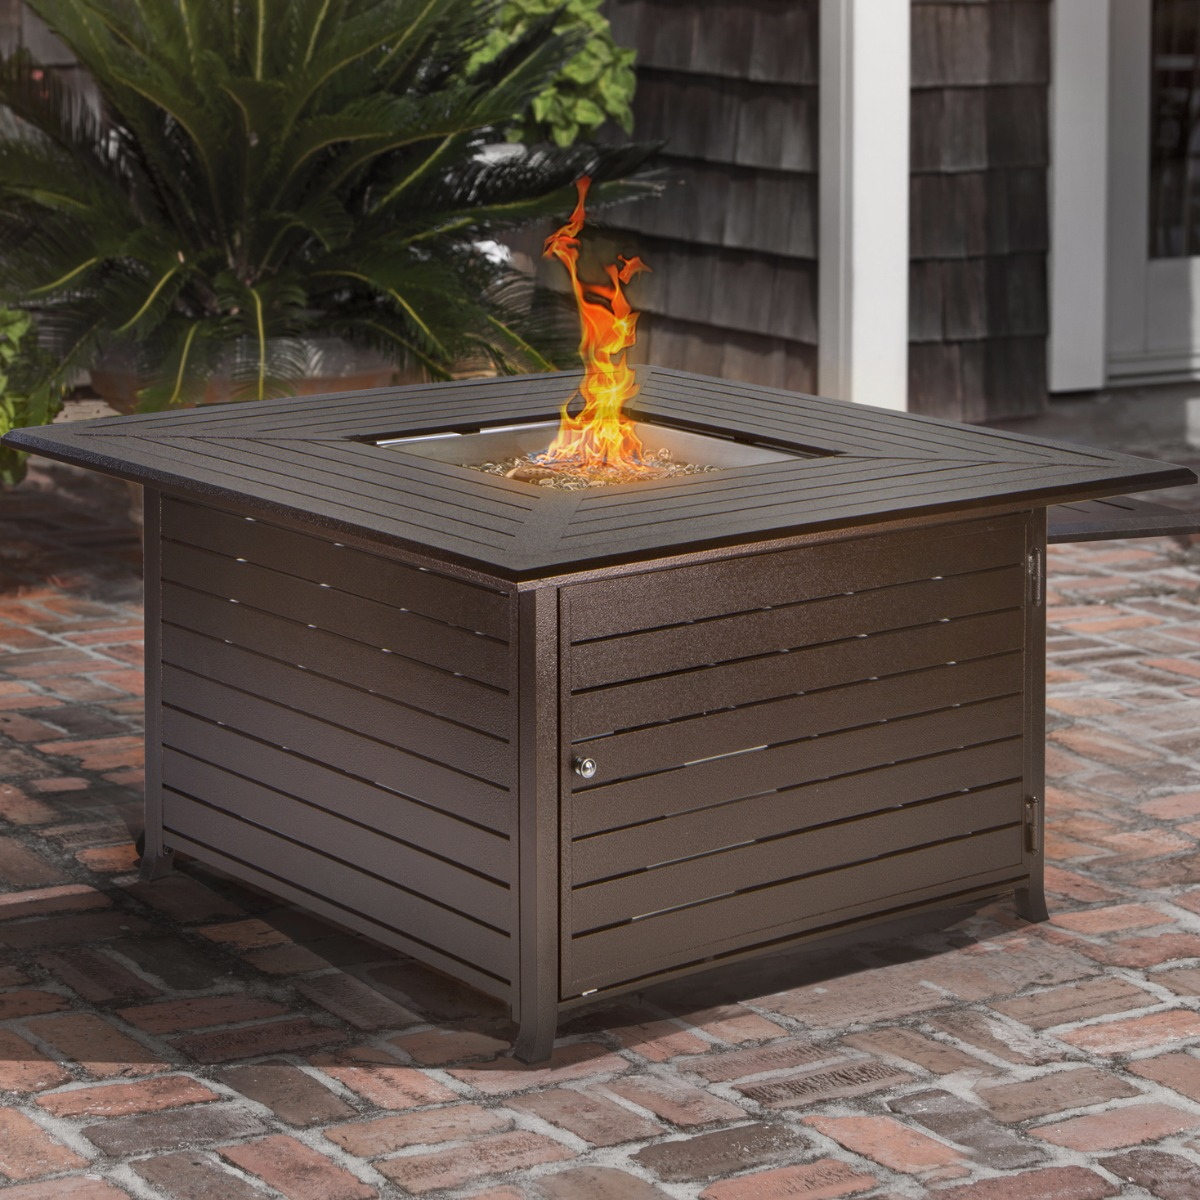 BARTON Outdoor Patio Heater Fire Pit Square Heater LP 42000BTU, with Cover